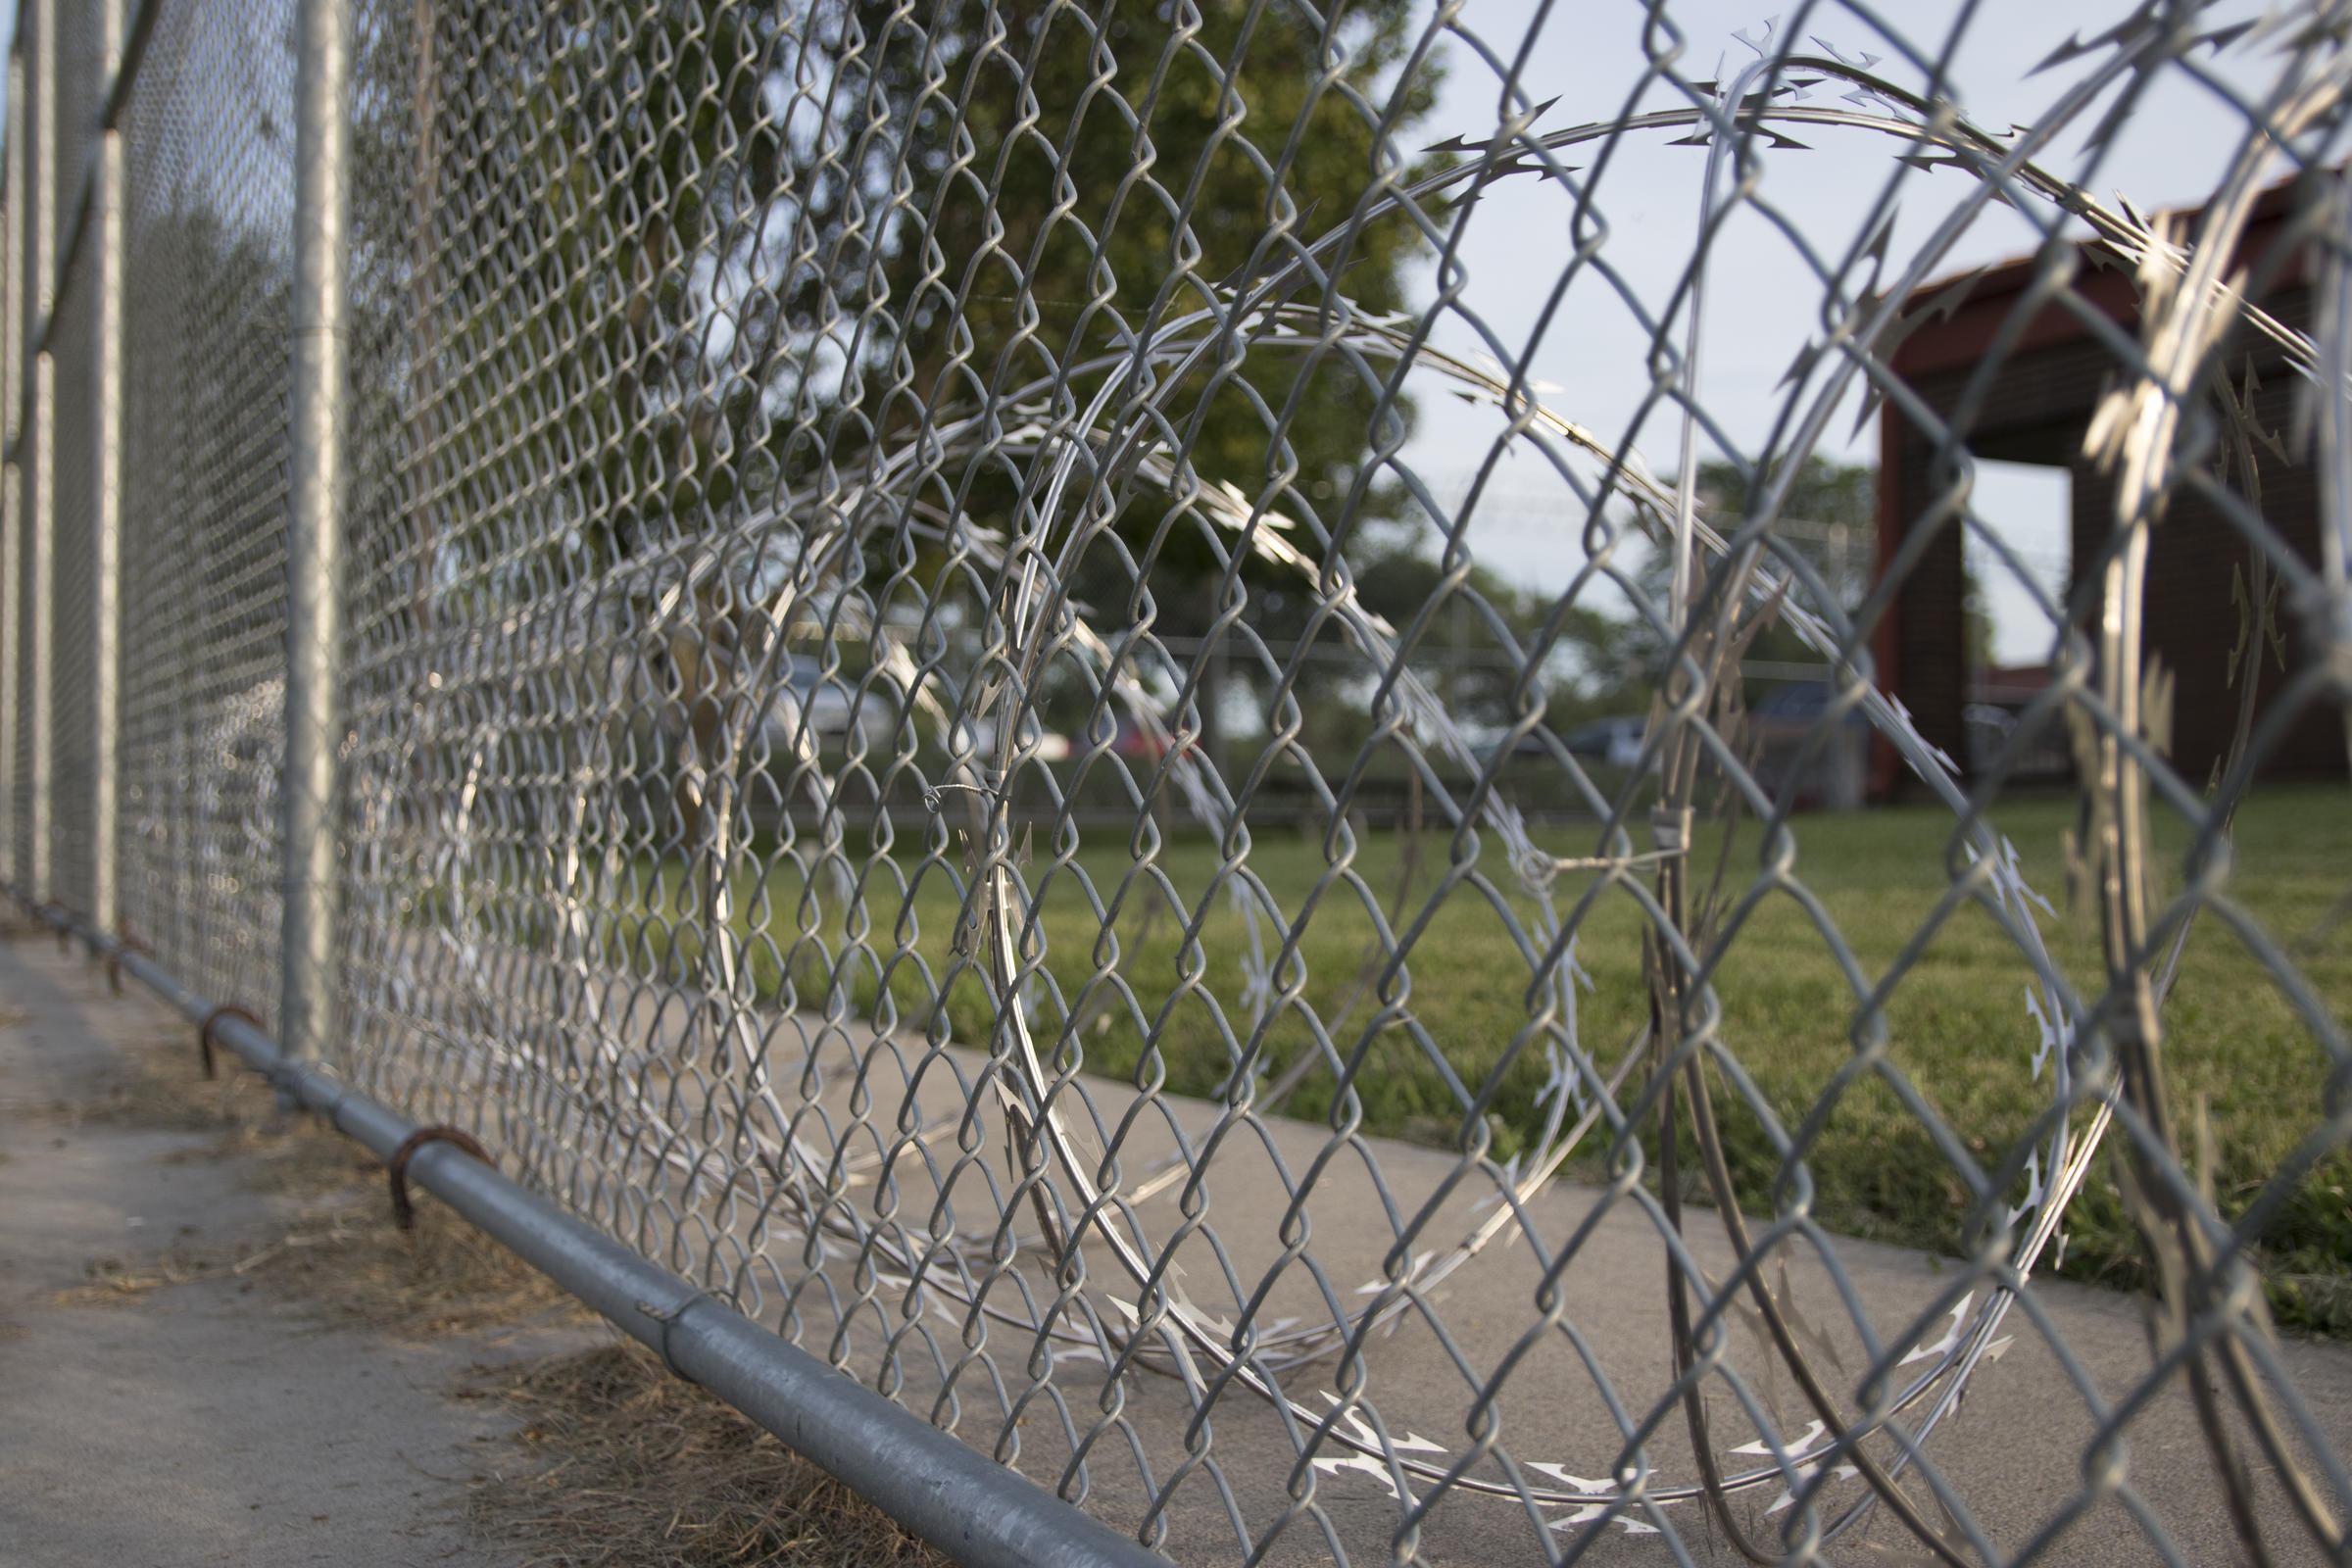 Kansas Will Spend Millions To House Hundreds Of Inmates At A